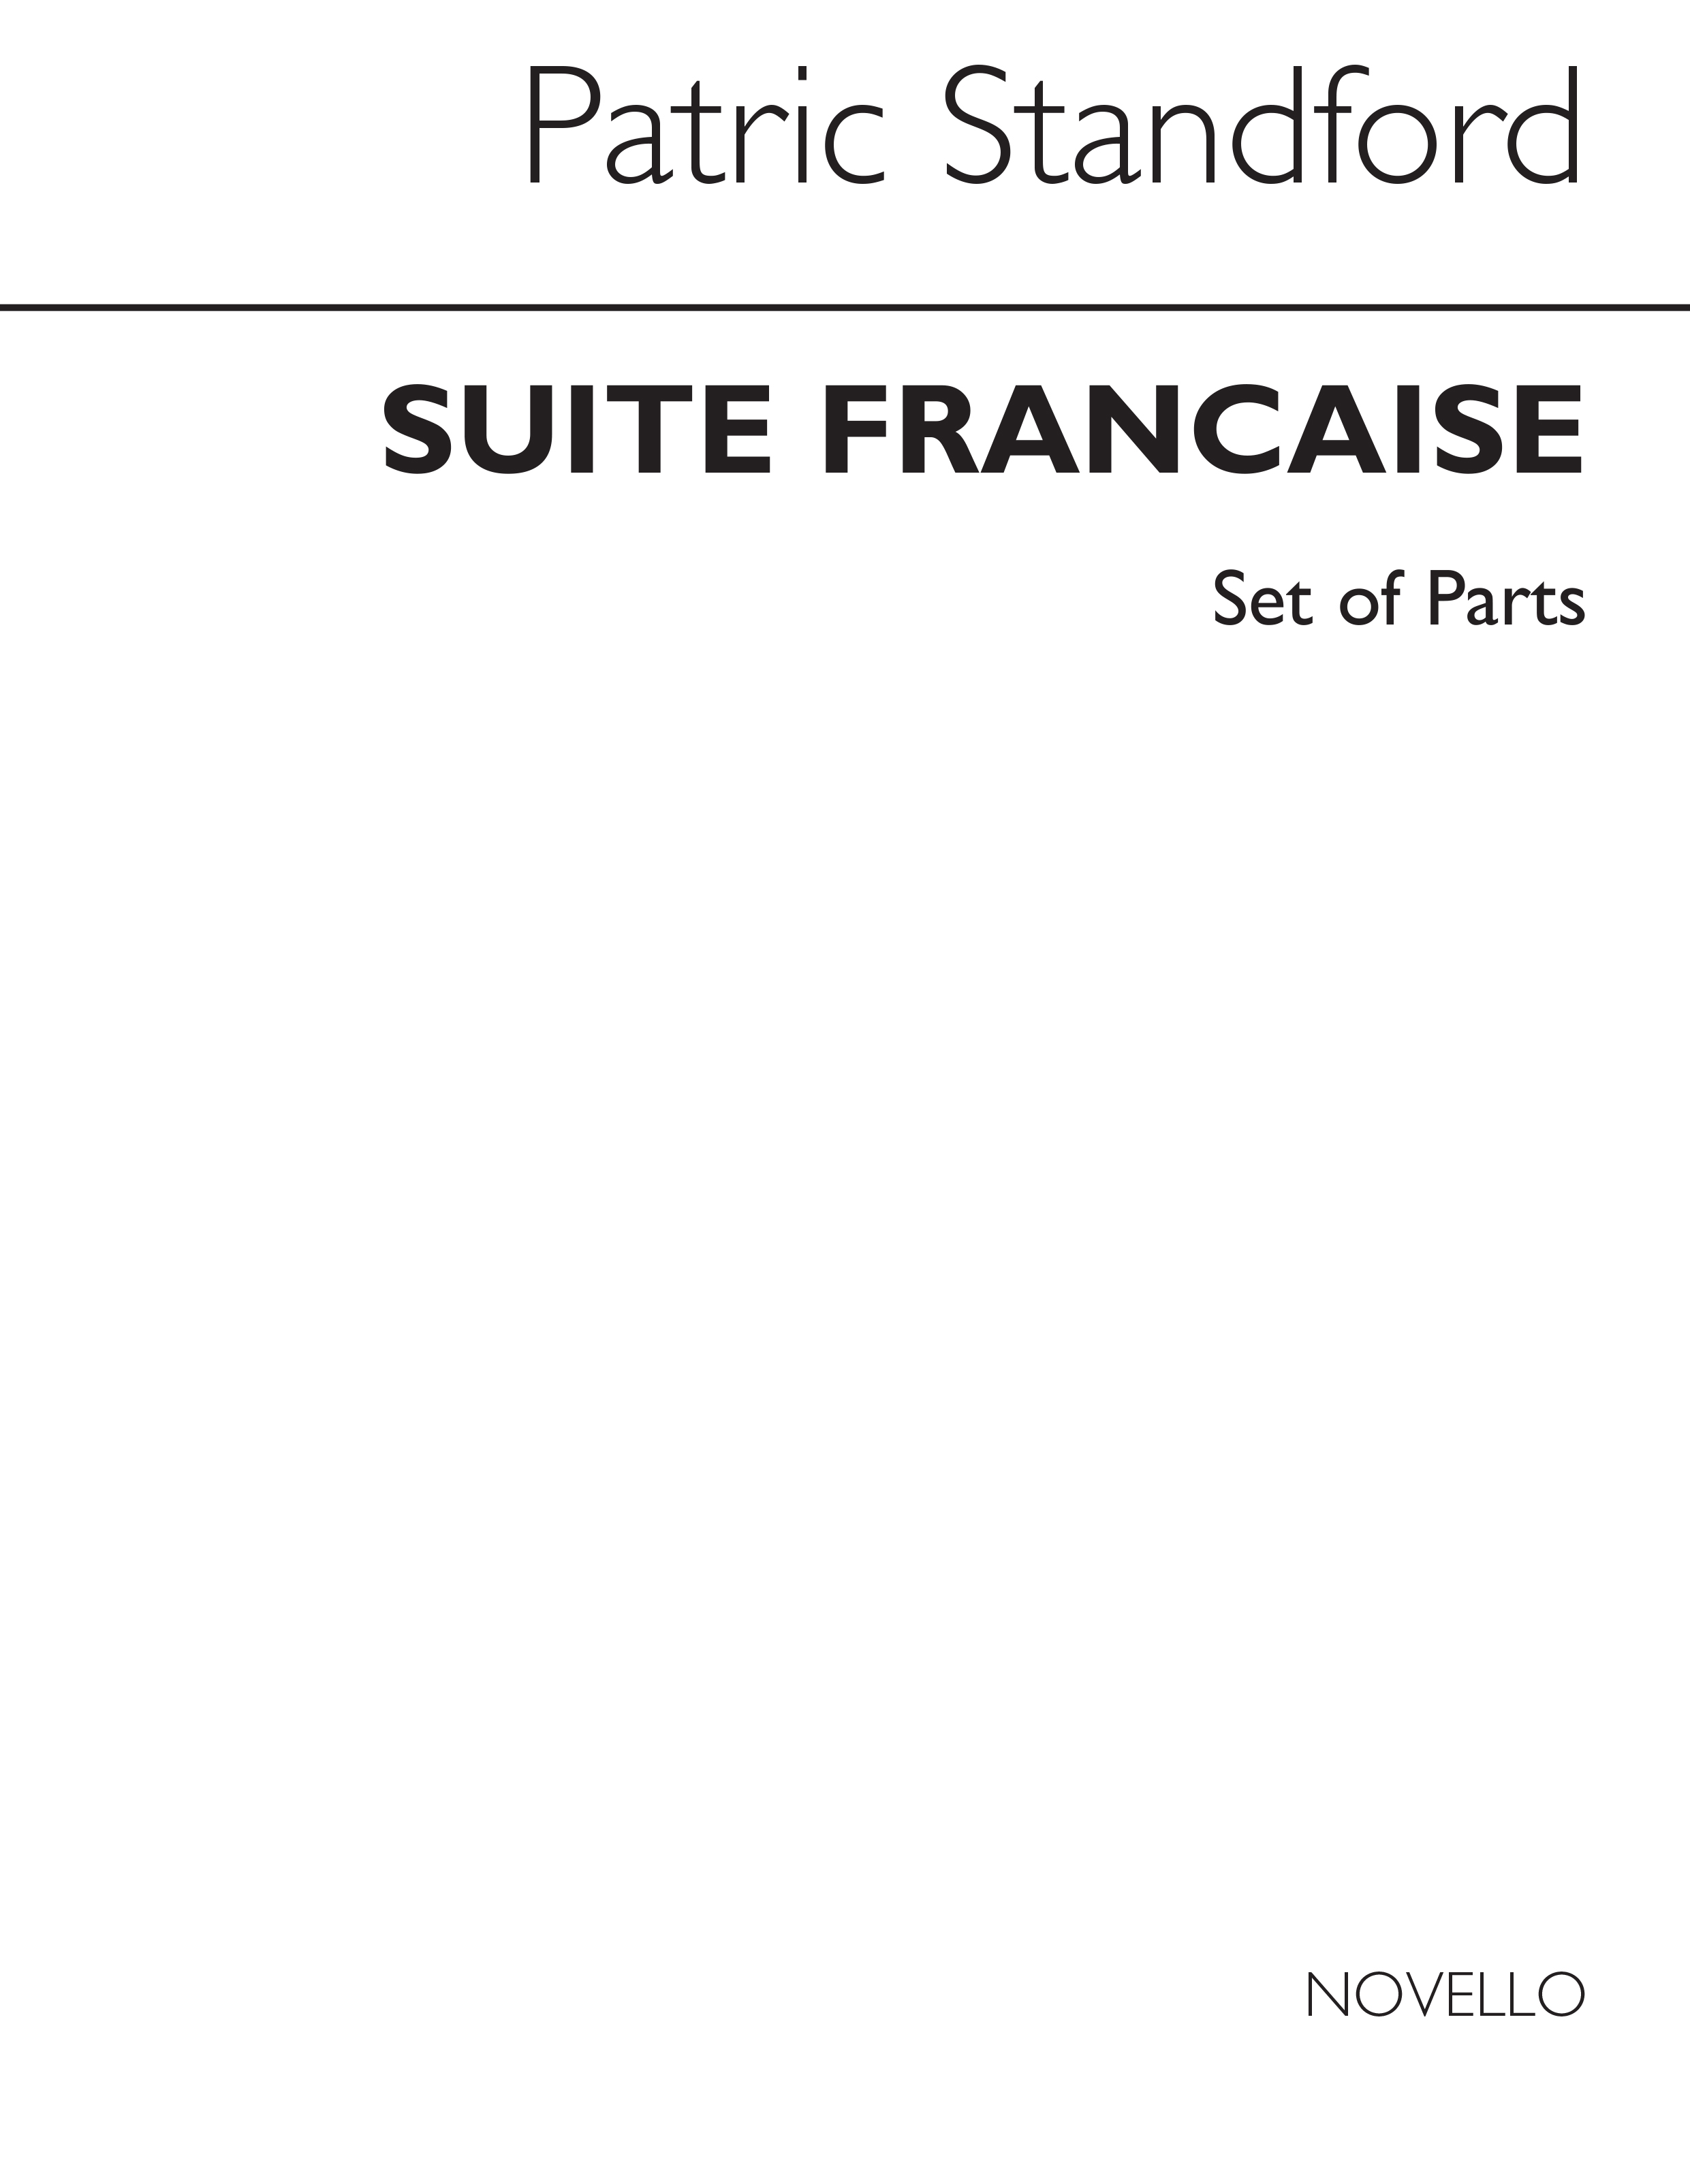 Patric Standford: Standford Suite Francaise For Wind Quintet Parts: Wind